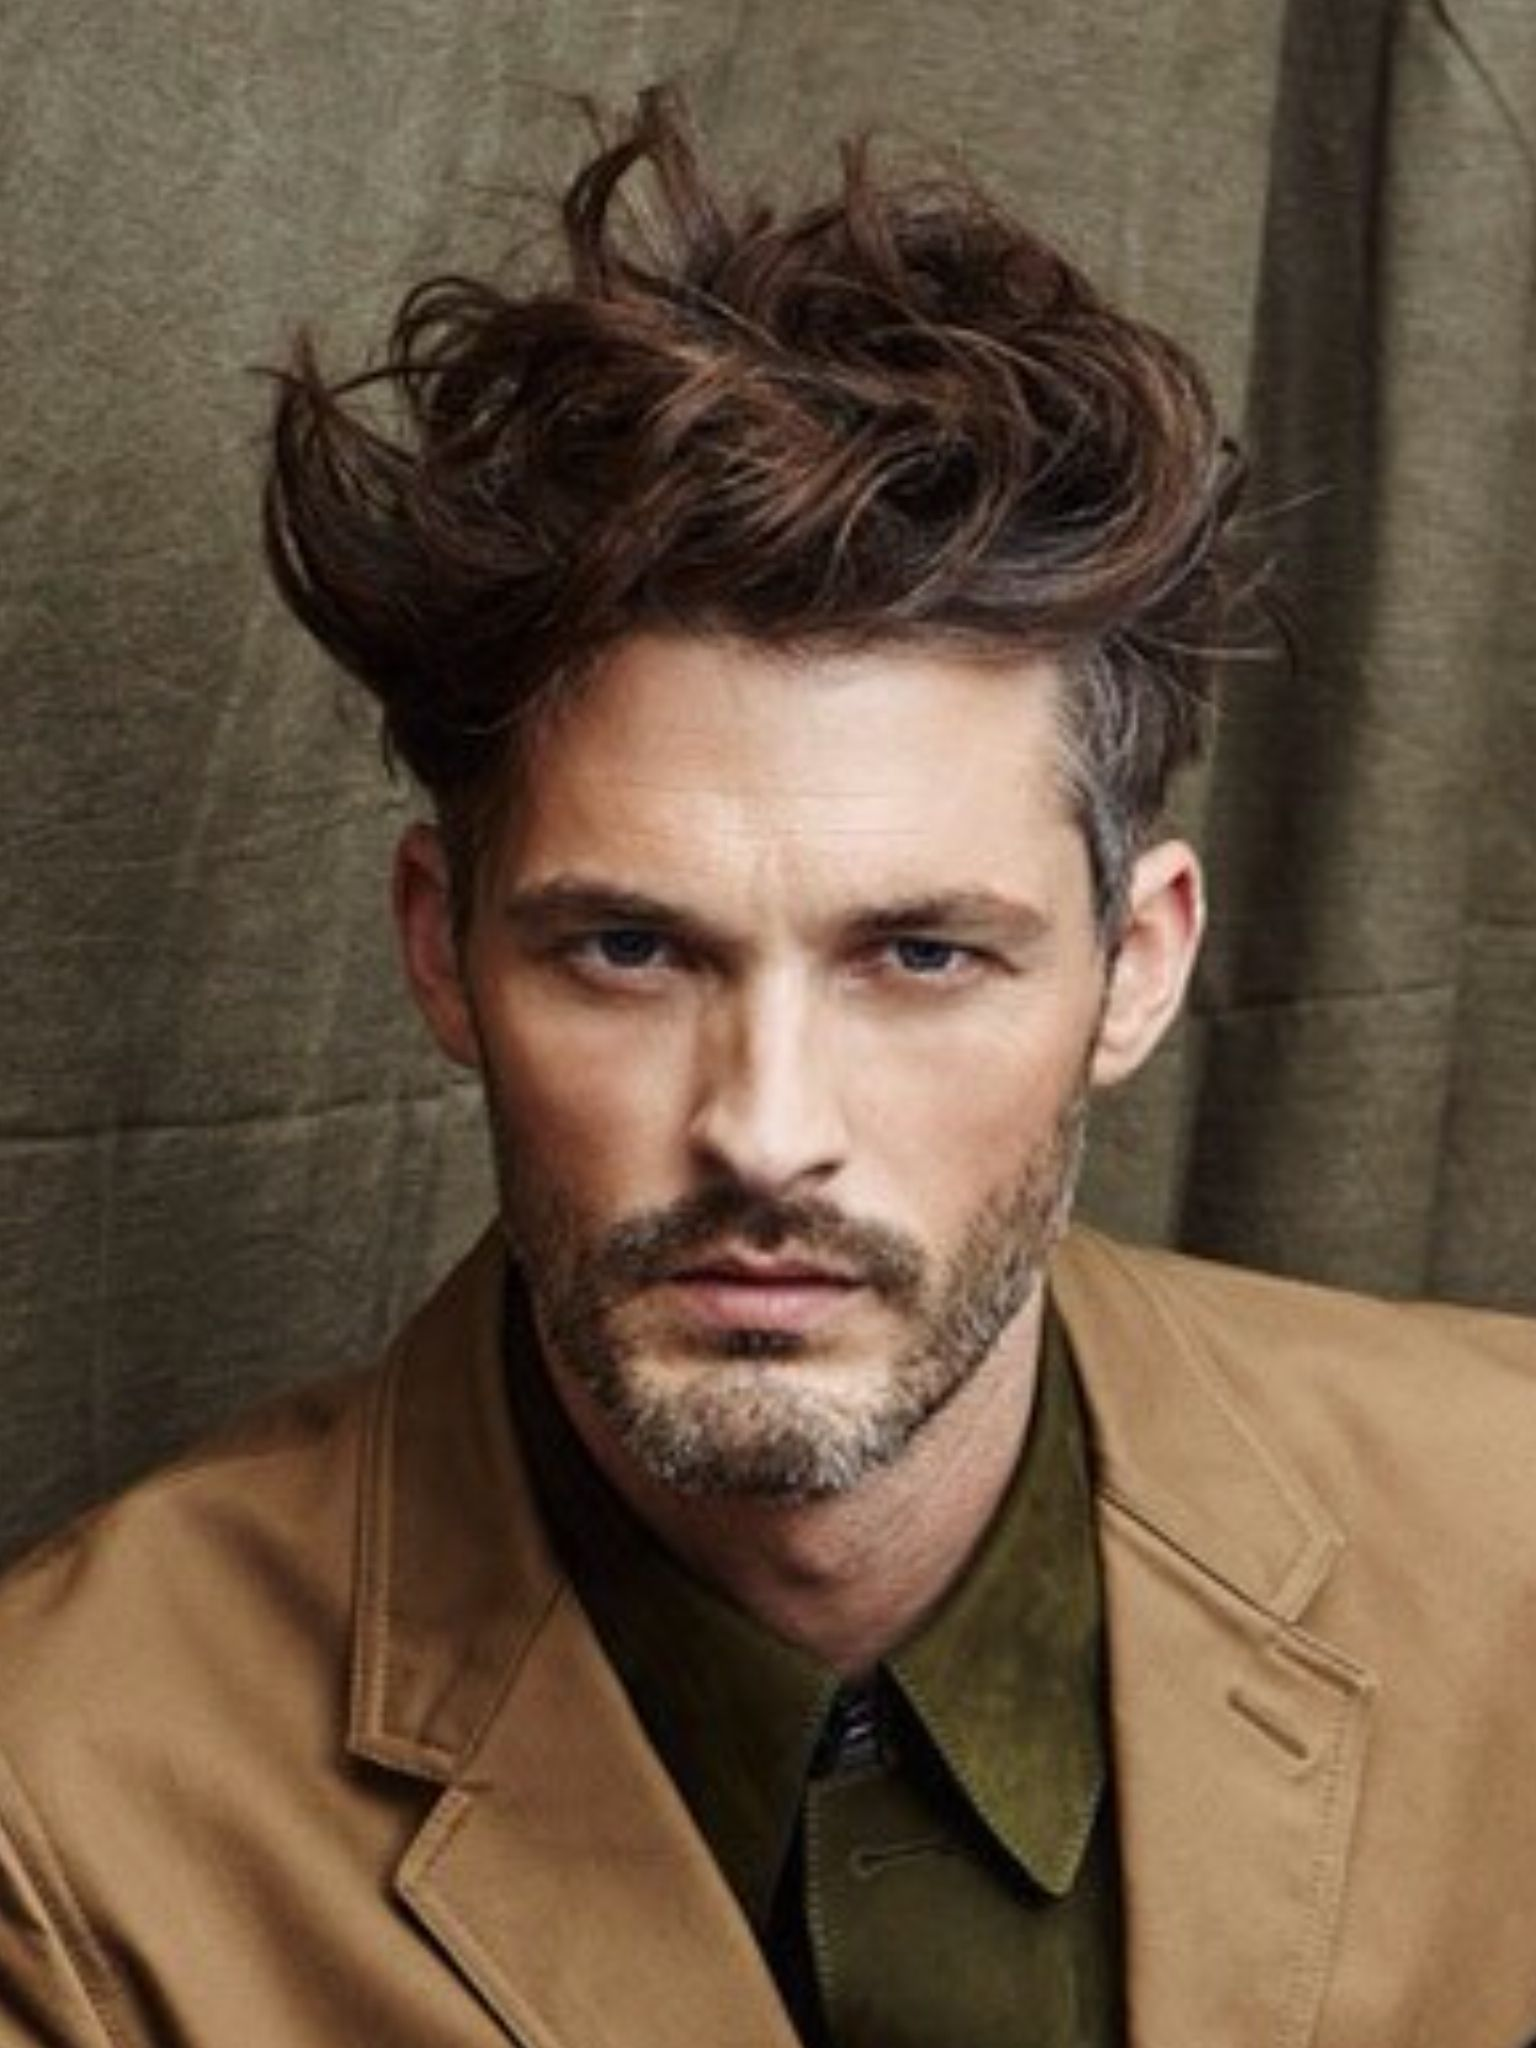 Hair menus wear fashion for men mode homme menus fashion